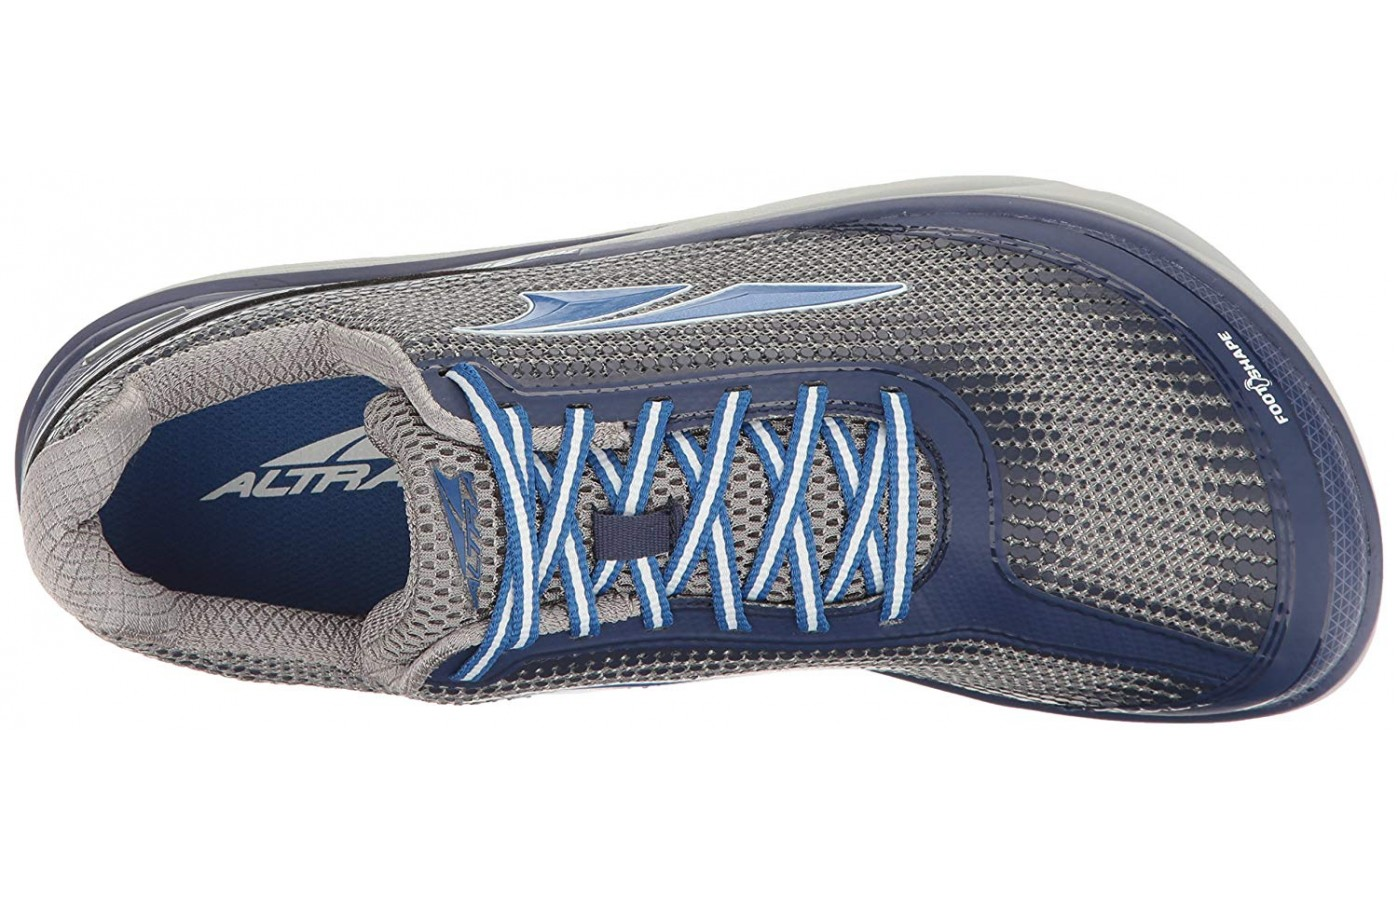 These shoes are great for roads and well-groomed trails.